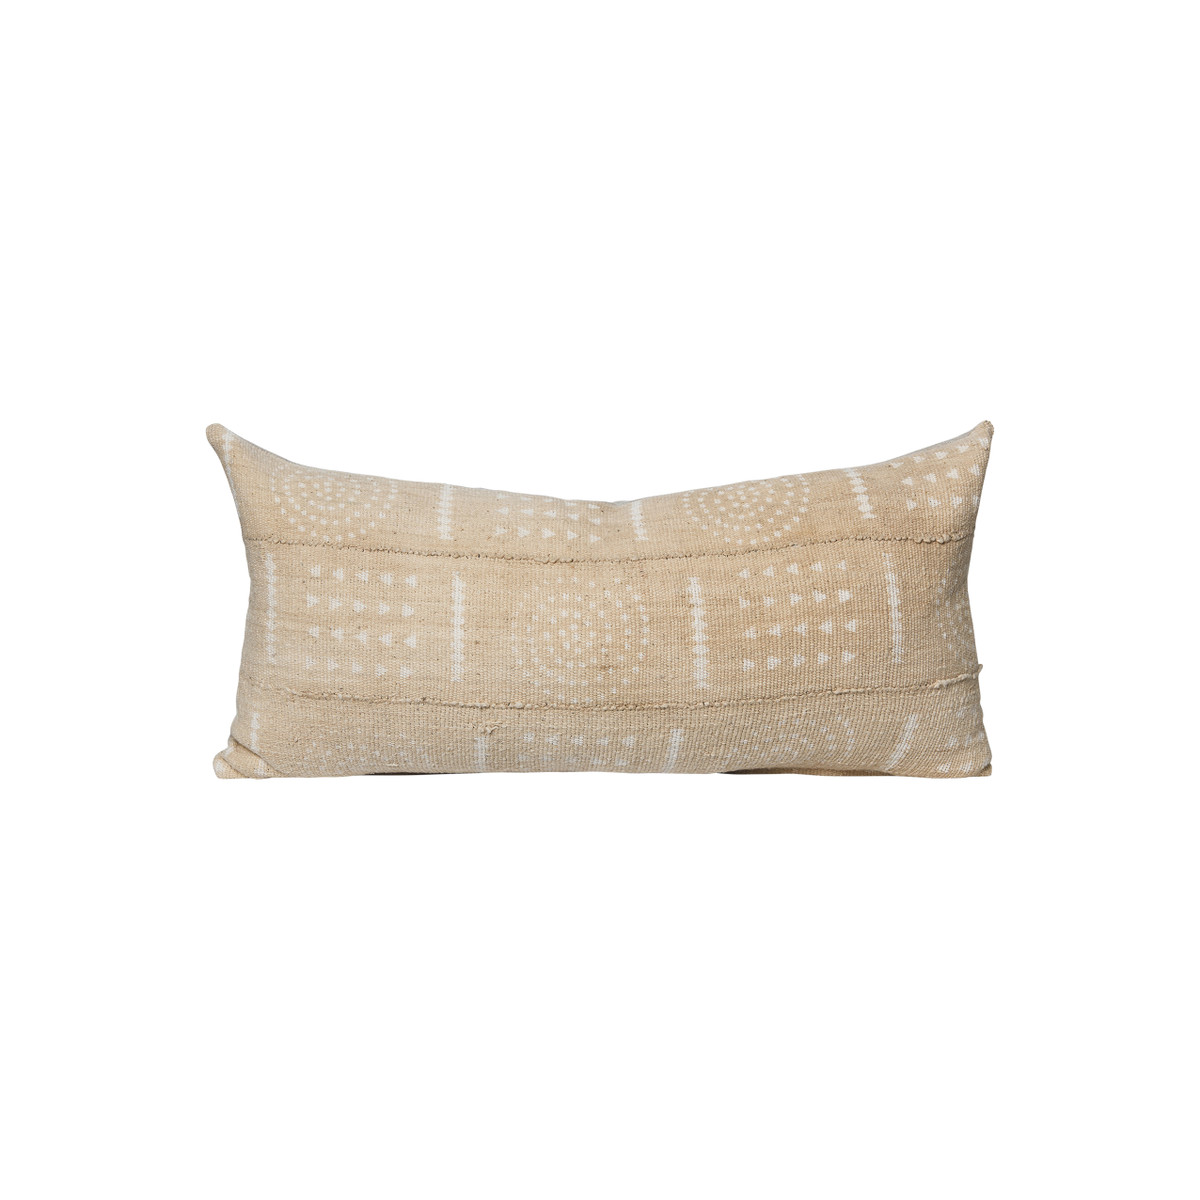 Wheat and Ivory Mud Cloth 14 x 27 Lumbar Pillow - Front